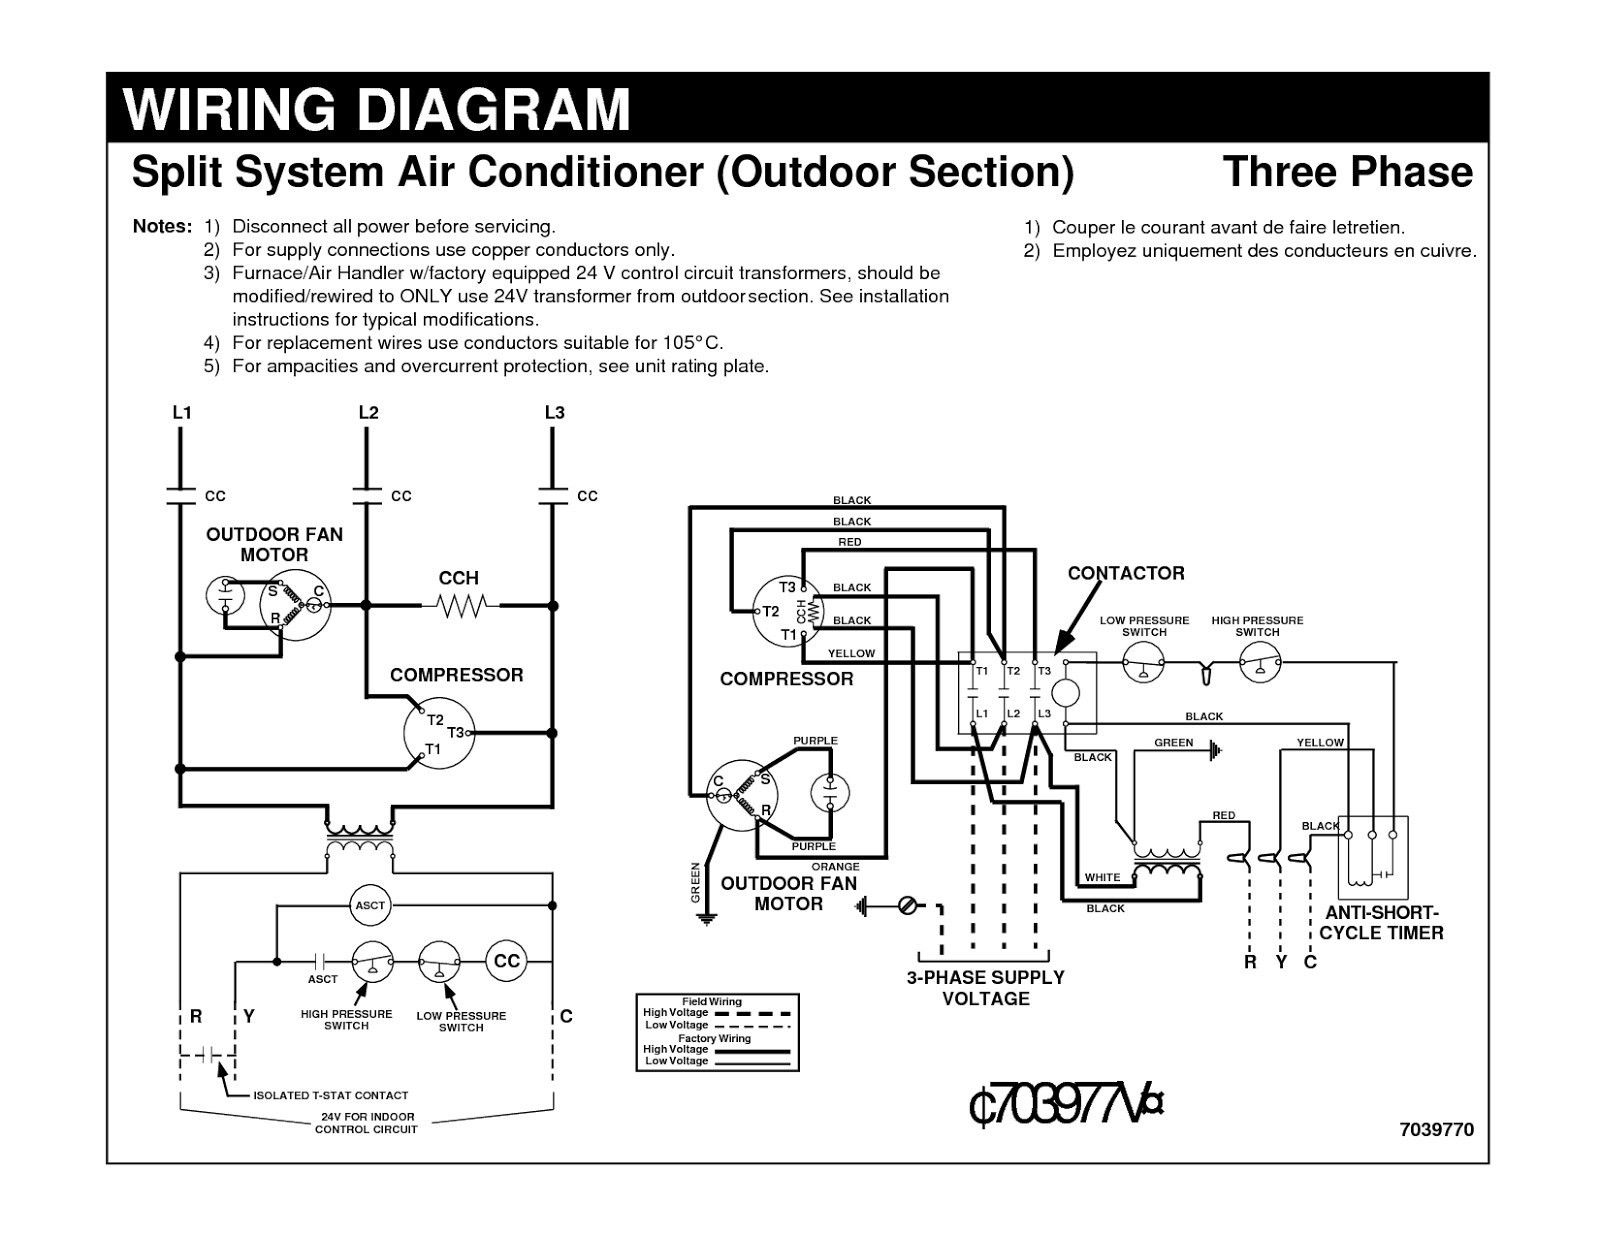 New Hvac Wiring Diagram Test Questions Diagram